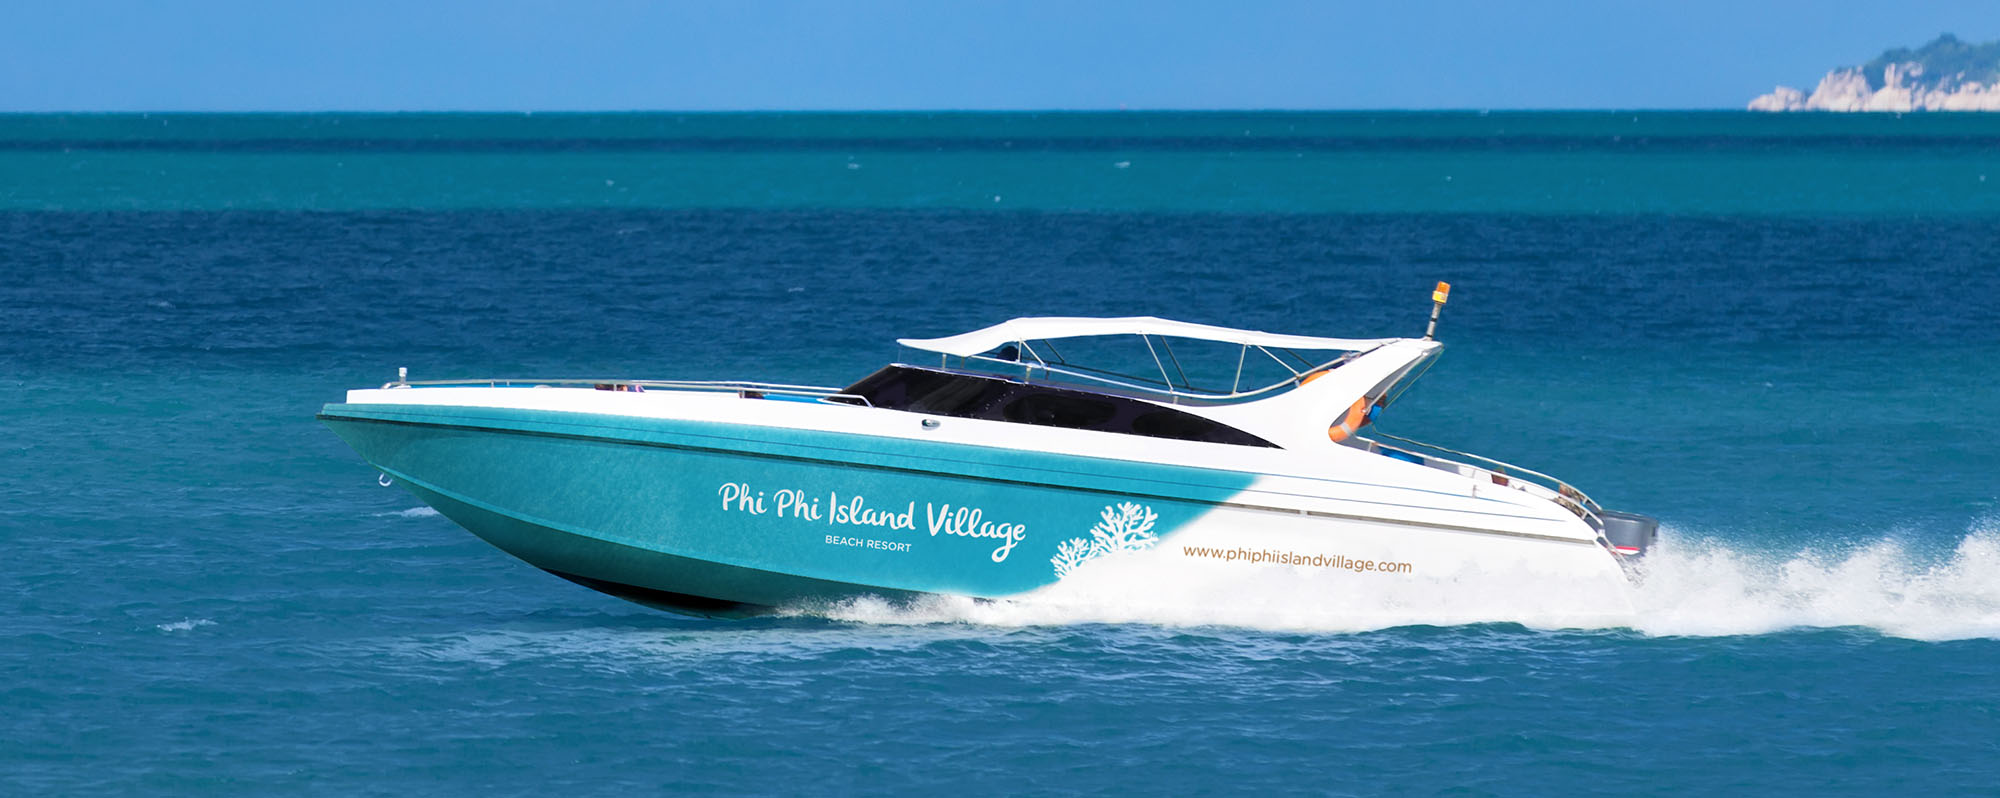 Phi Phi Island Resort Speedboat Design